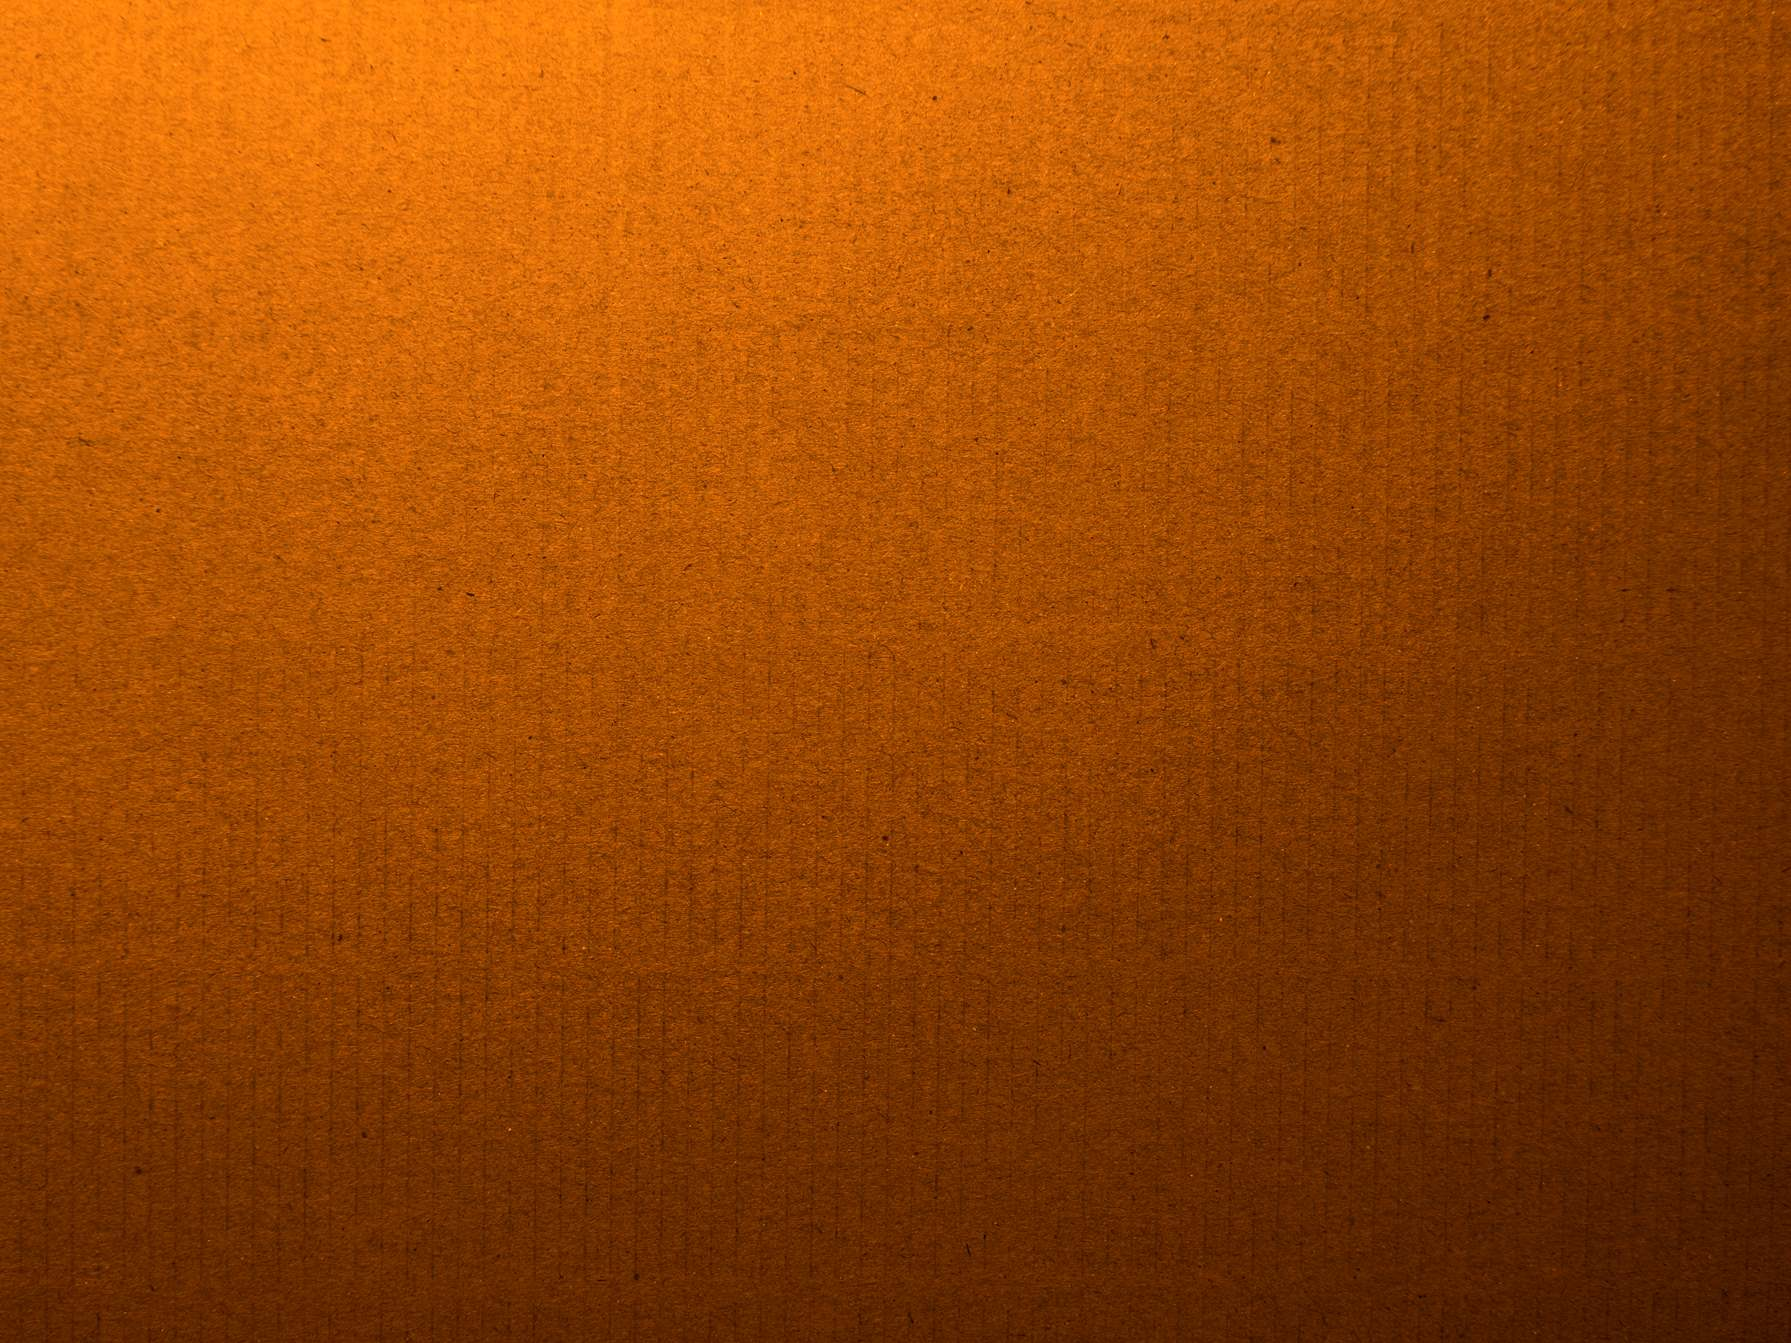 Brown Yellow Cardboard Texture Background   PhotoHDX 1791x1343